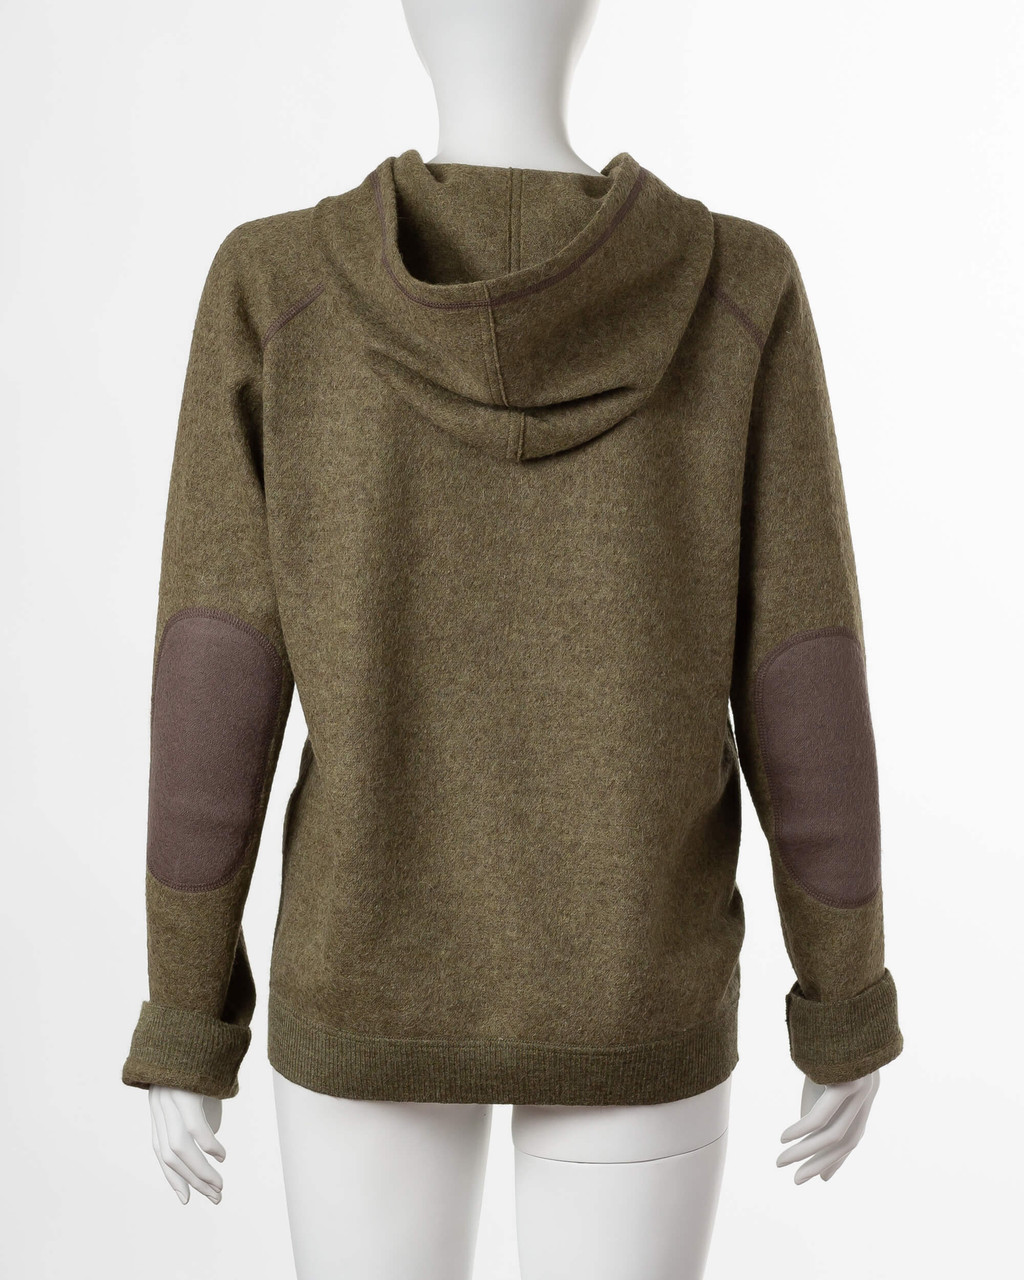 Alicia Adams Alpaca Verbier Zip Up For Women, alpaca sweater hoodie for women, alpaca sweater womens, hunter green alpaca zip up hoodie